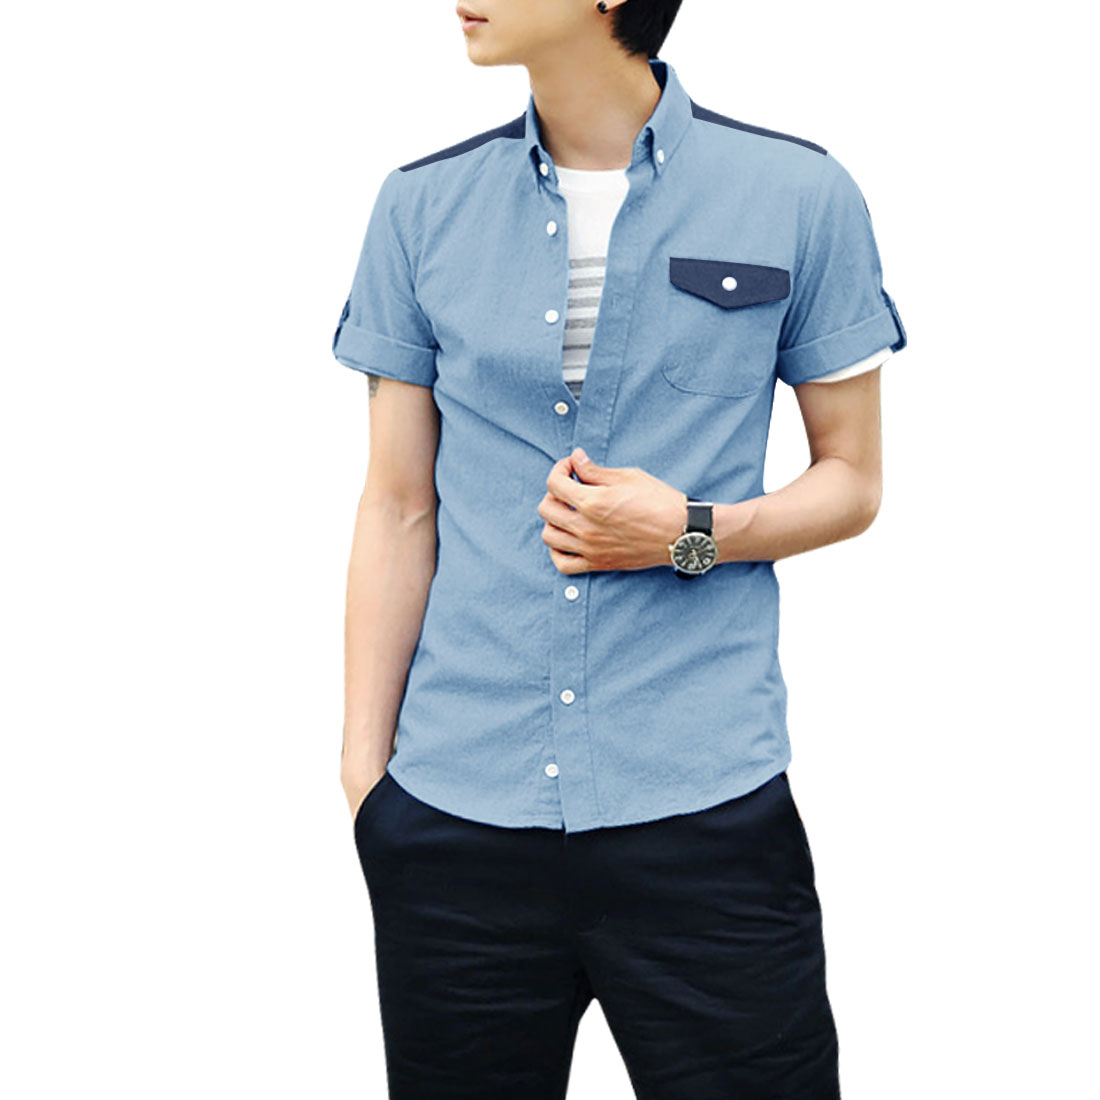 Mens Korea Fashion Point Collar Roll Up Sleeve Light Blue Casual Shirt M